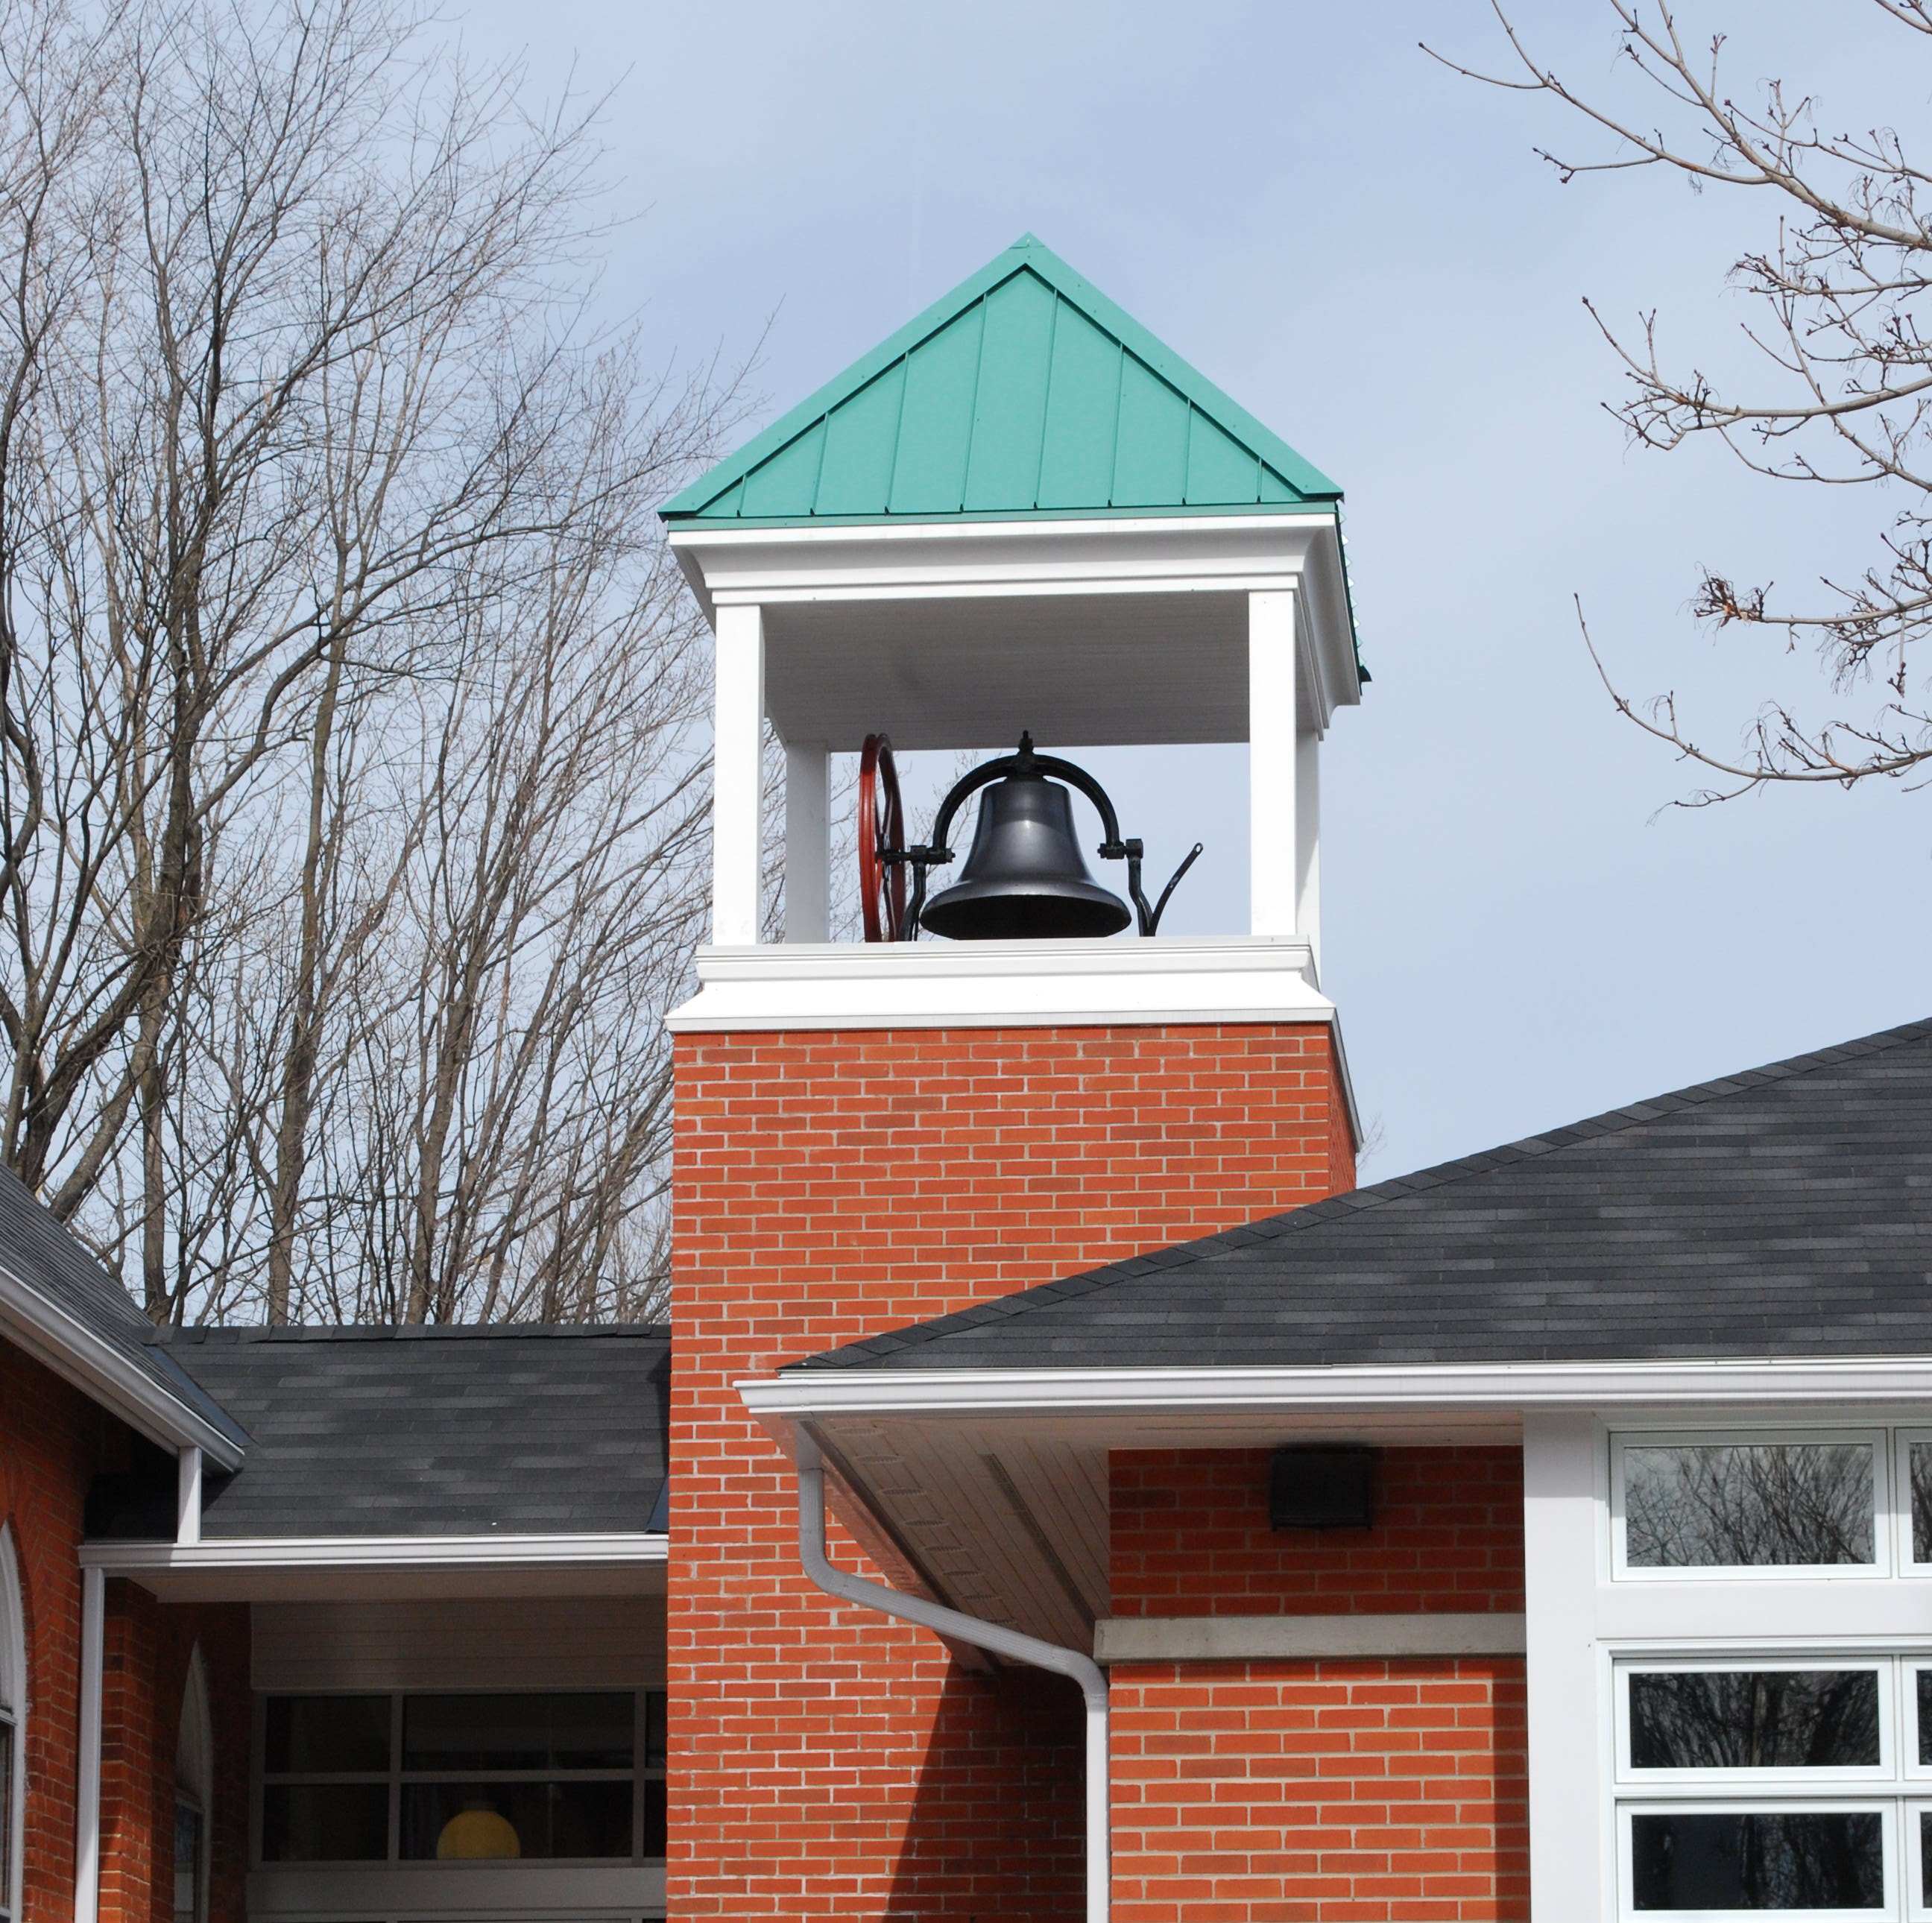 Centreton Community Hall bell tower